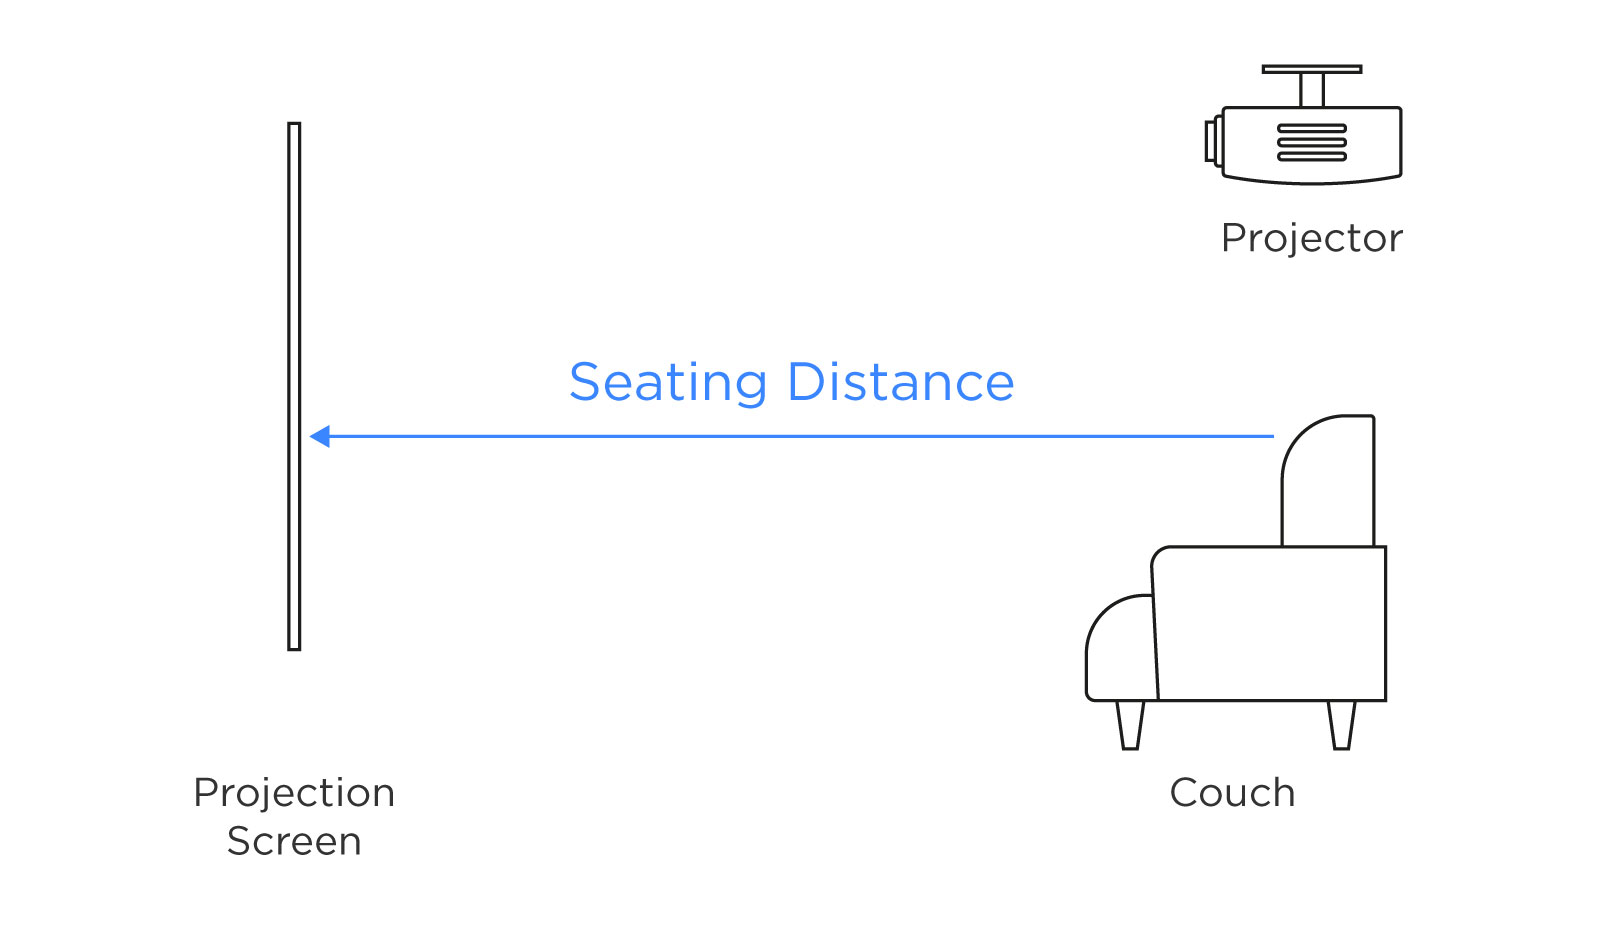 Seating Distance